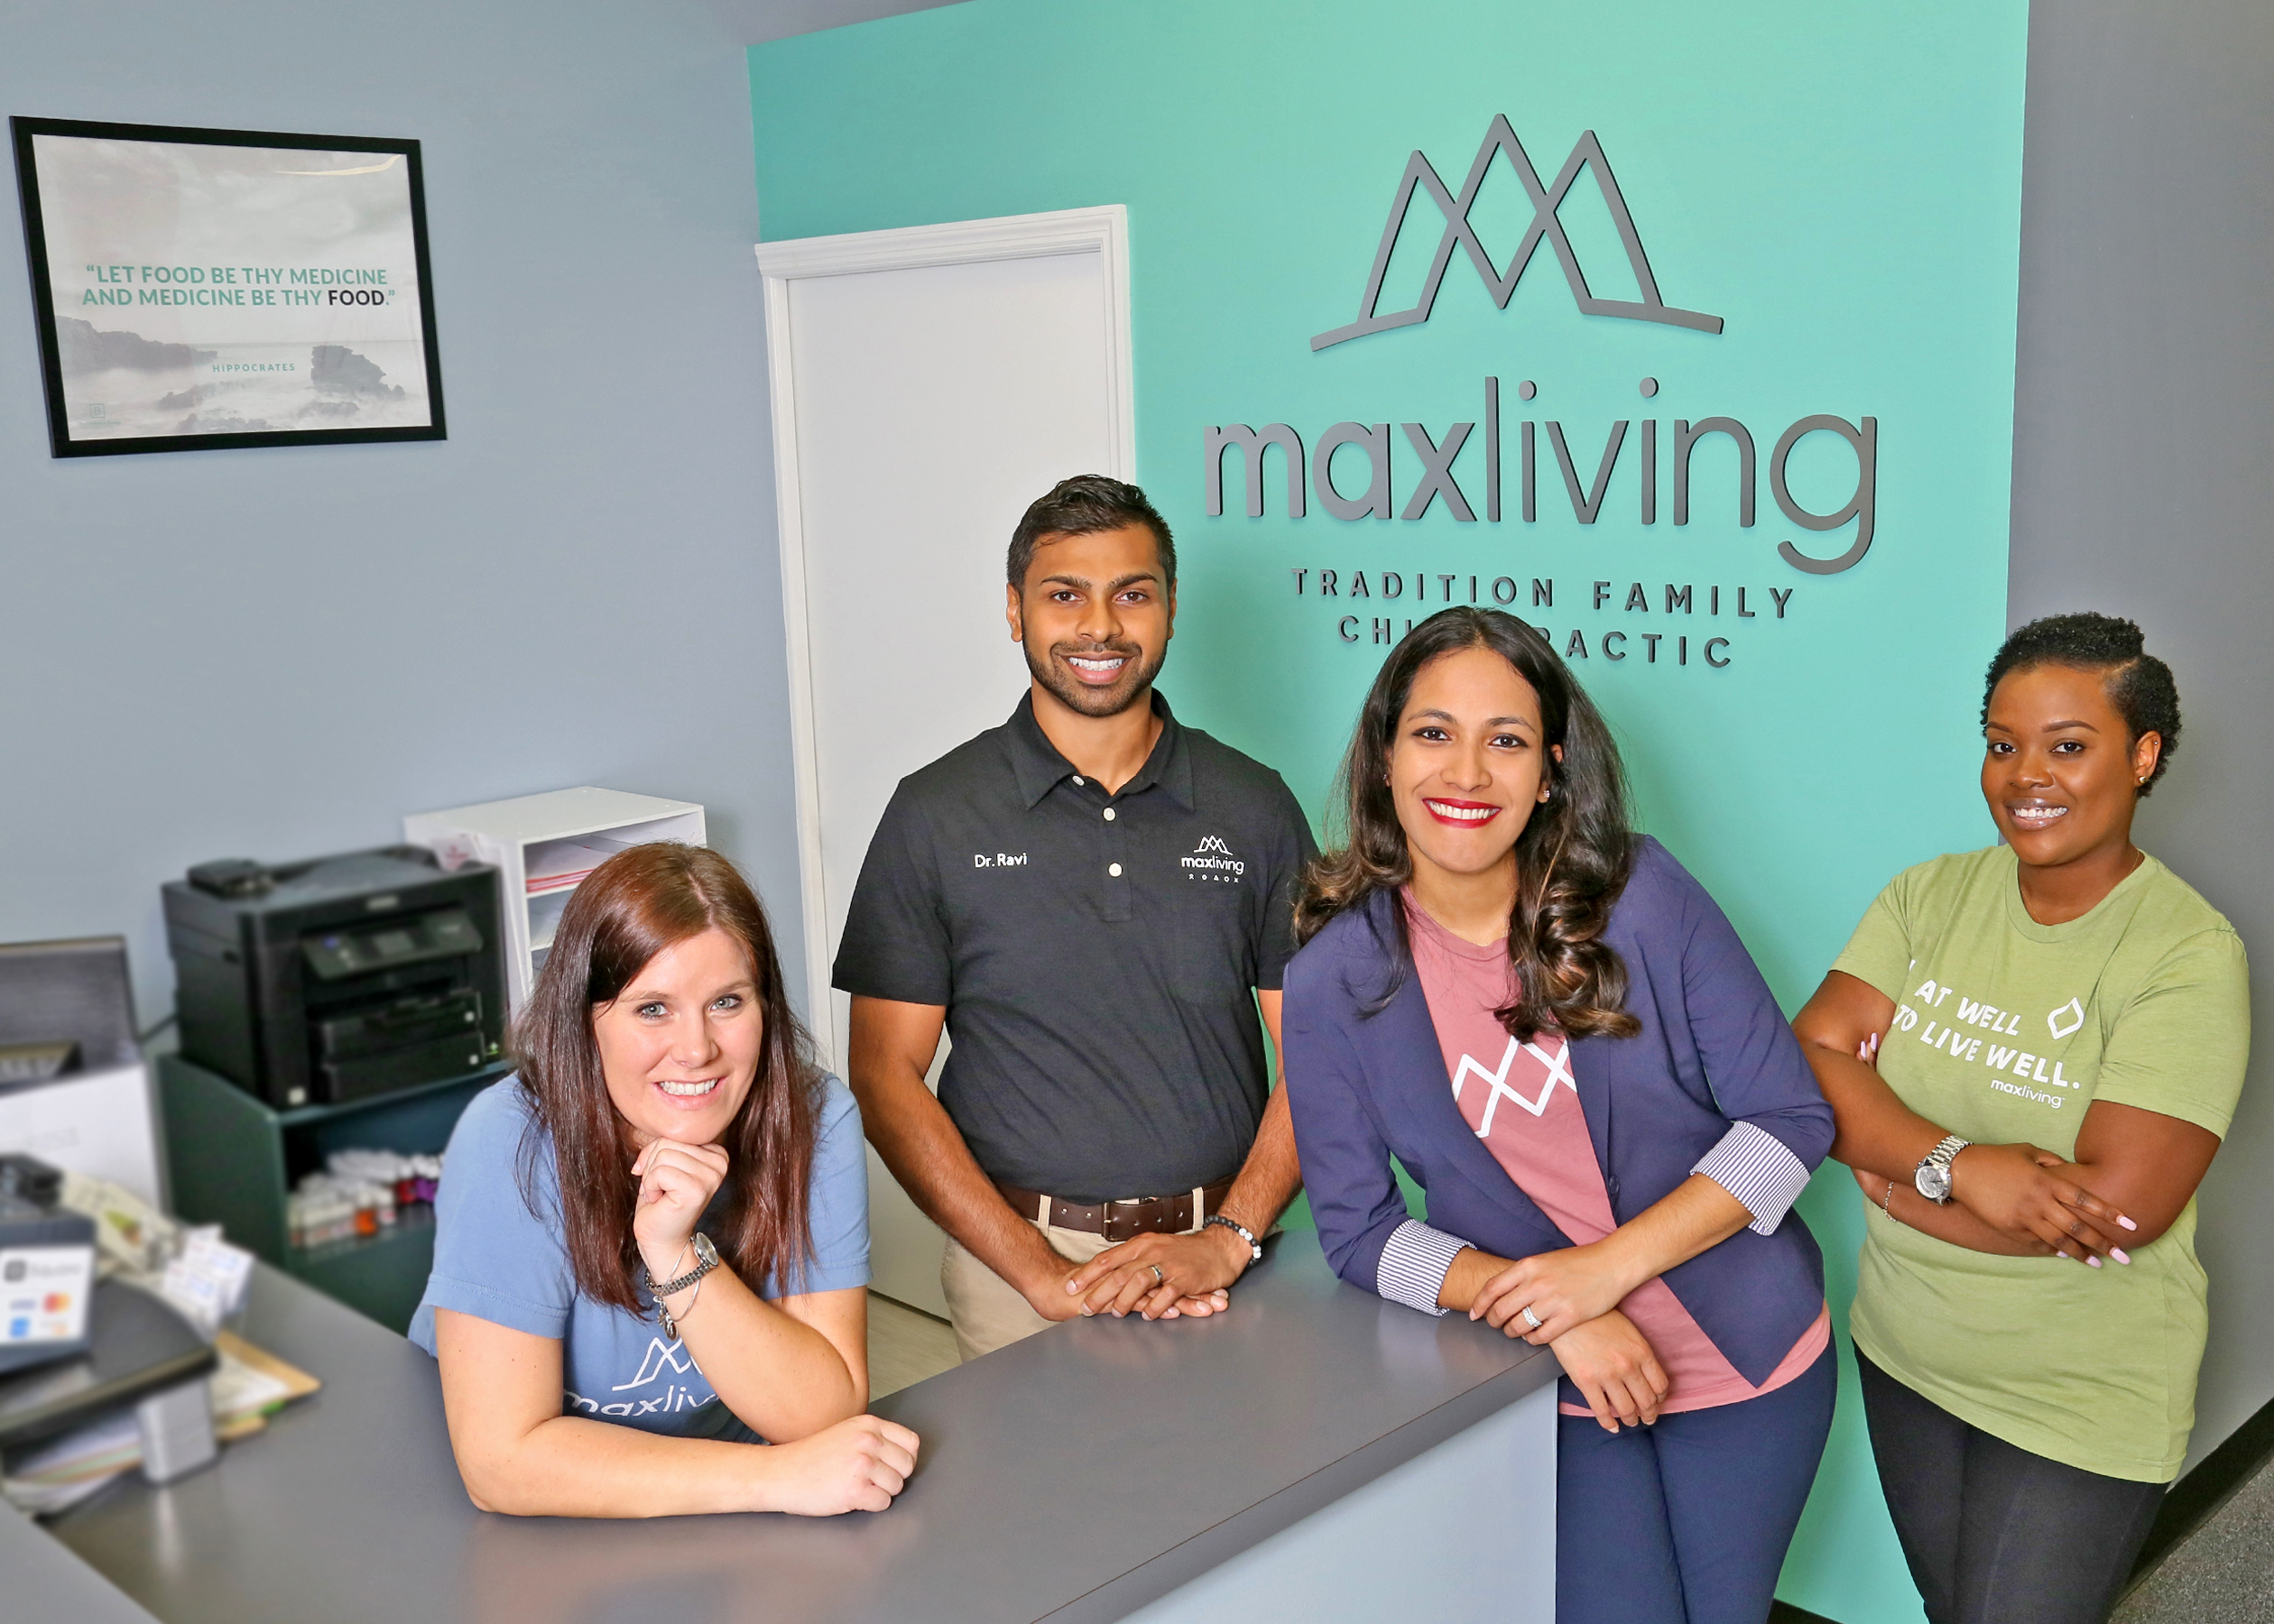 Tradition Family Chiropractic Treasure Coast Chiropractors